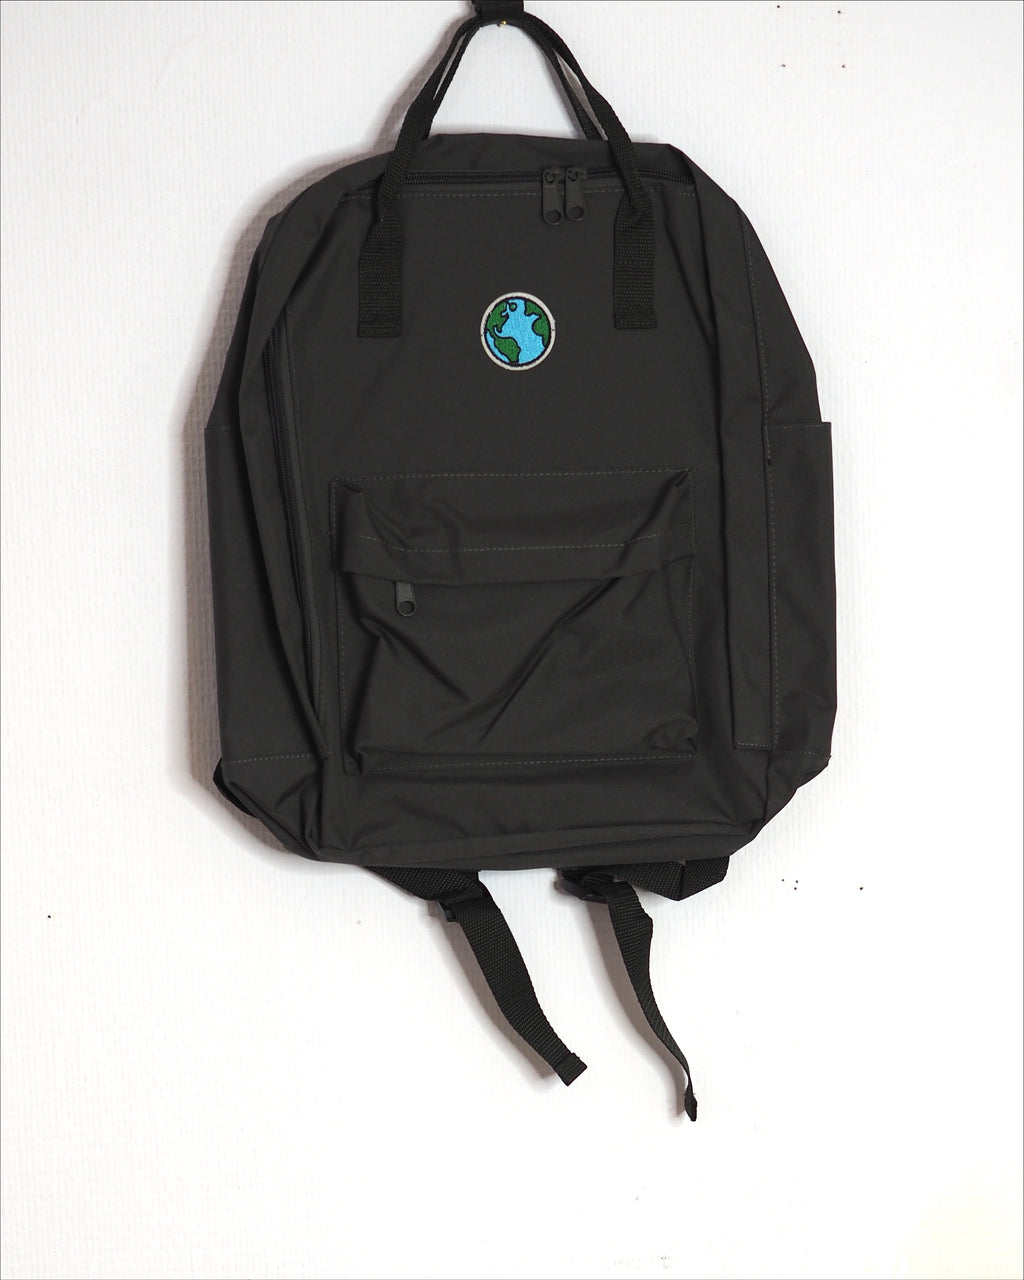 OUTLET / BACKPACK WANDERLUST BLACK